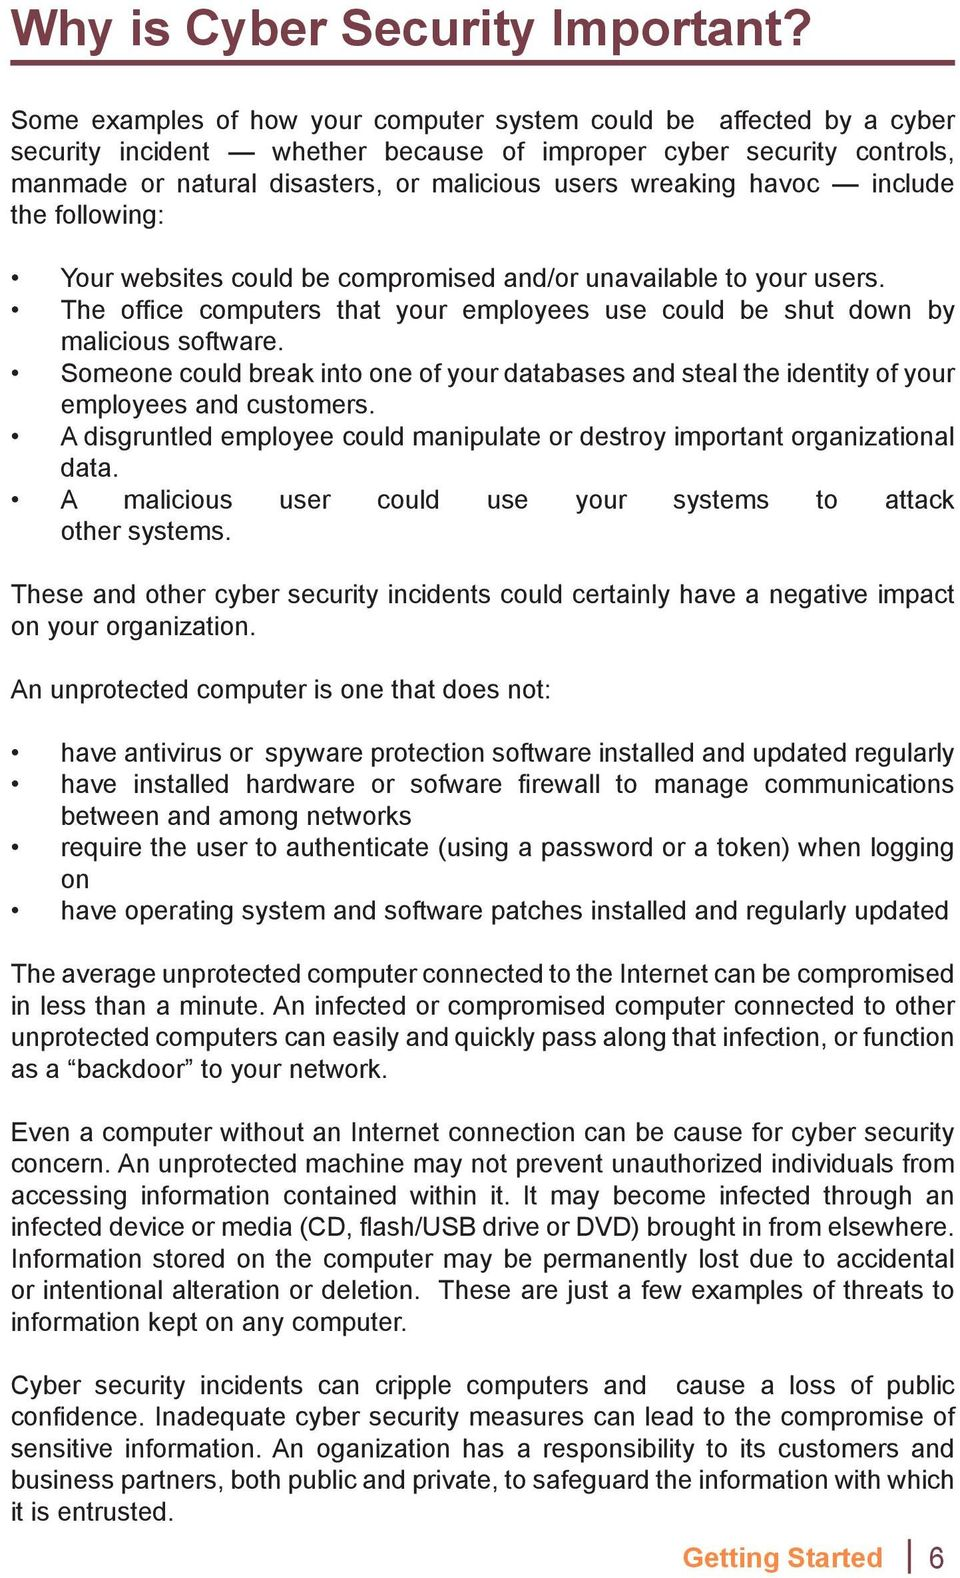 havoc include the following: Your websites could be compromised and/or unavailable to your users. The office computers that your employees use could be shut down by malicious software.